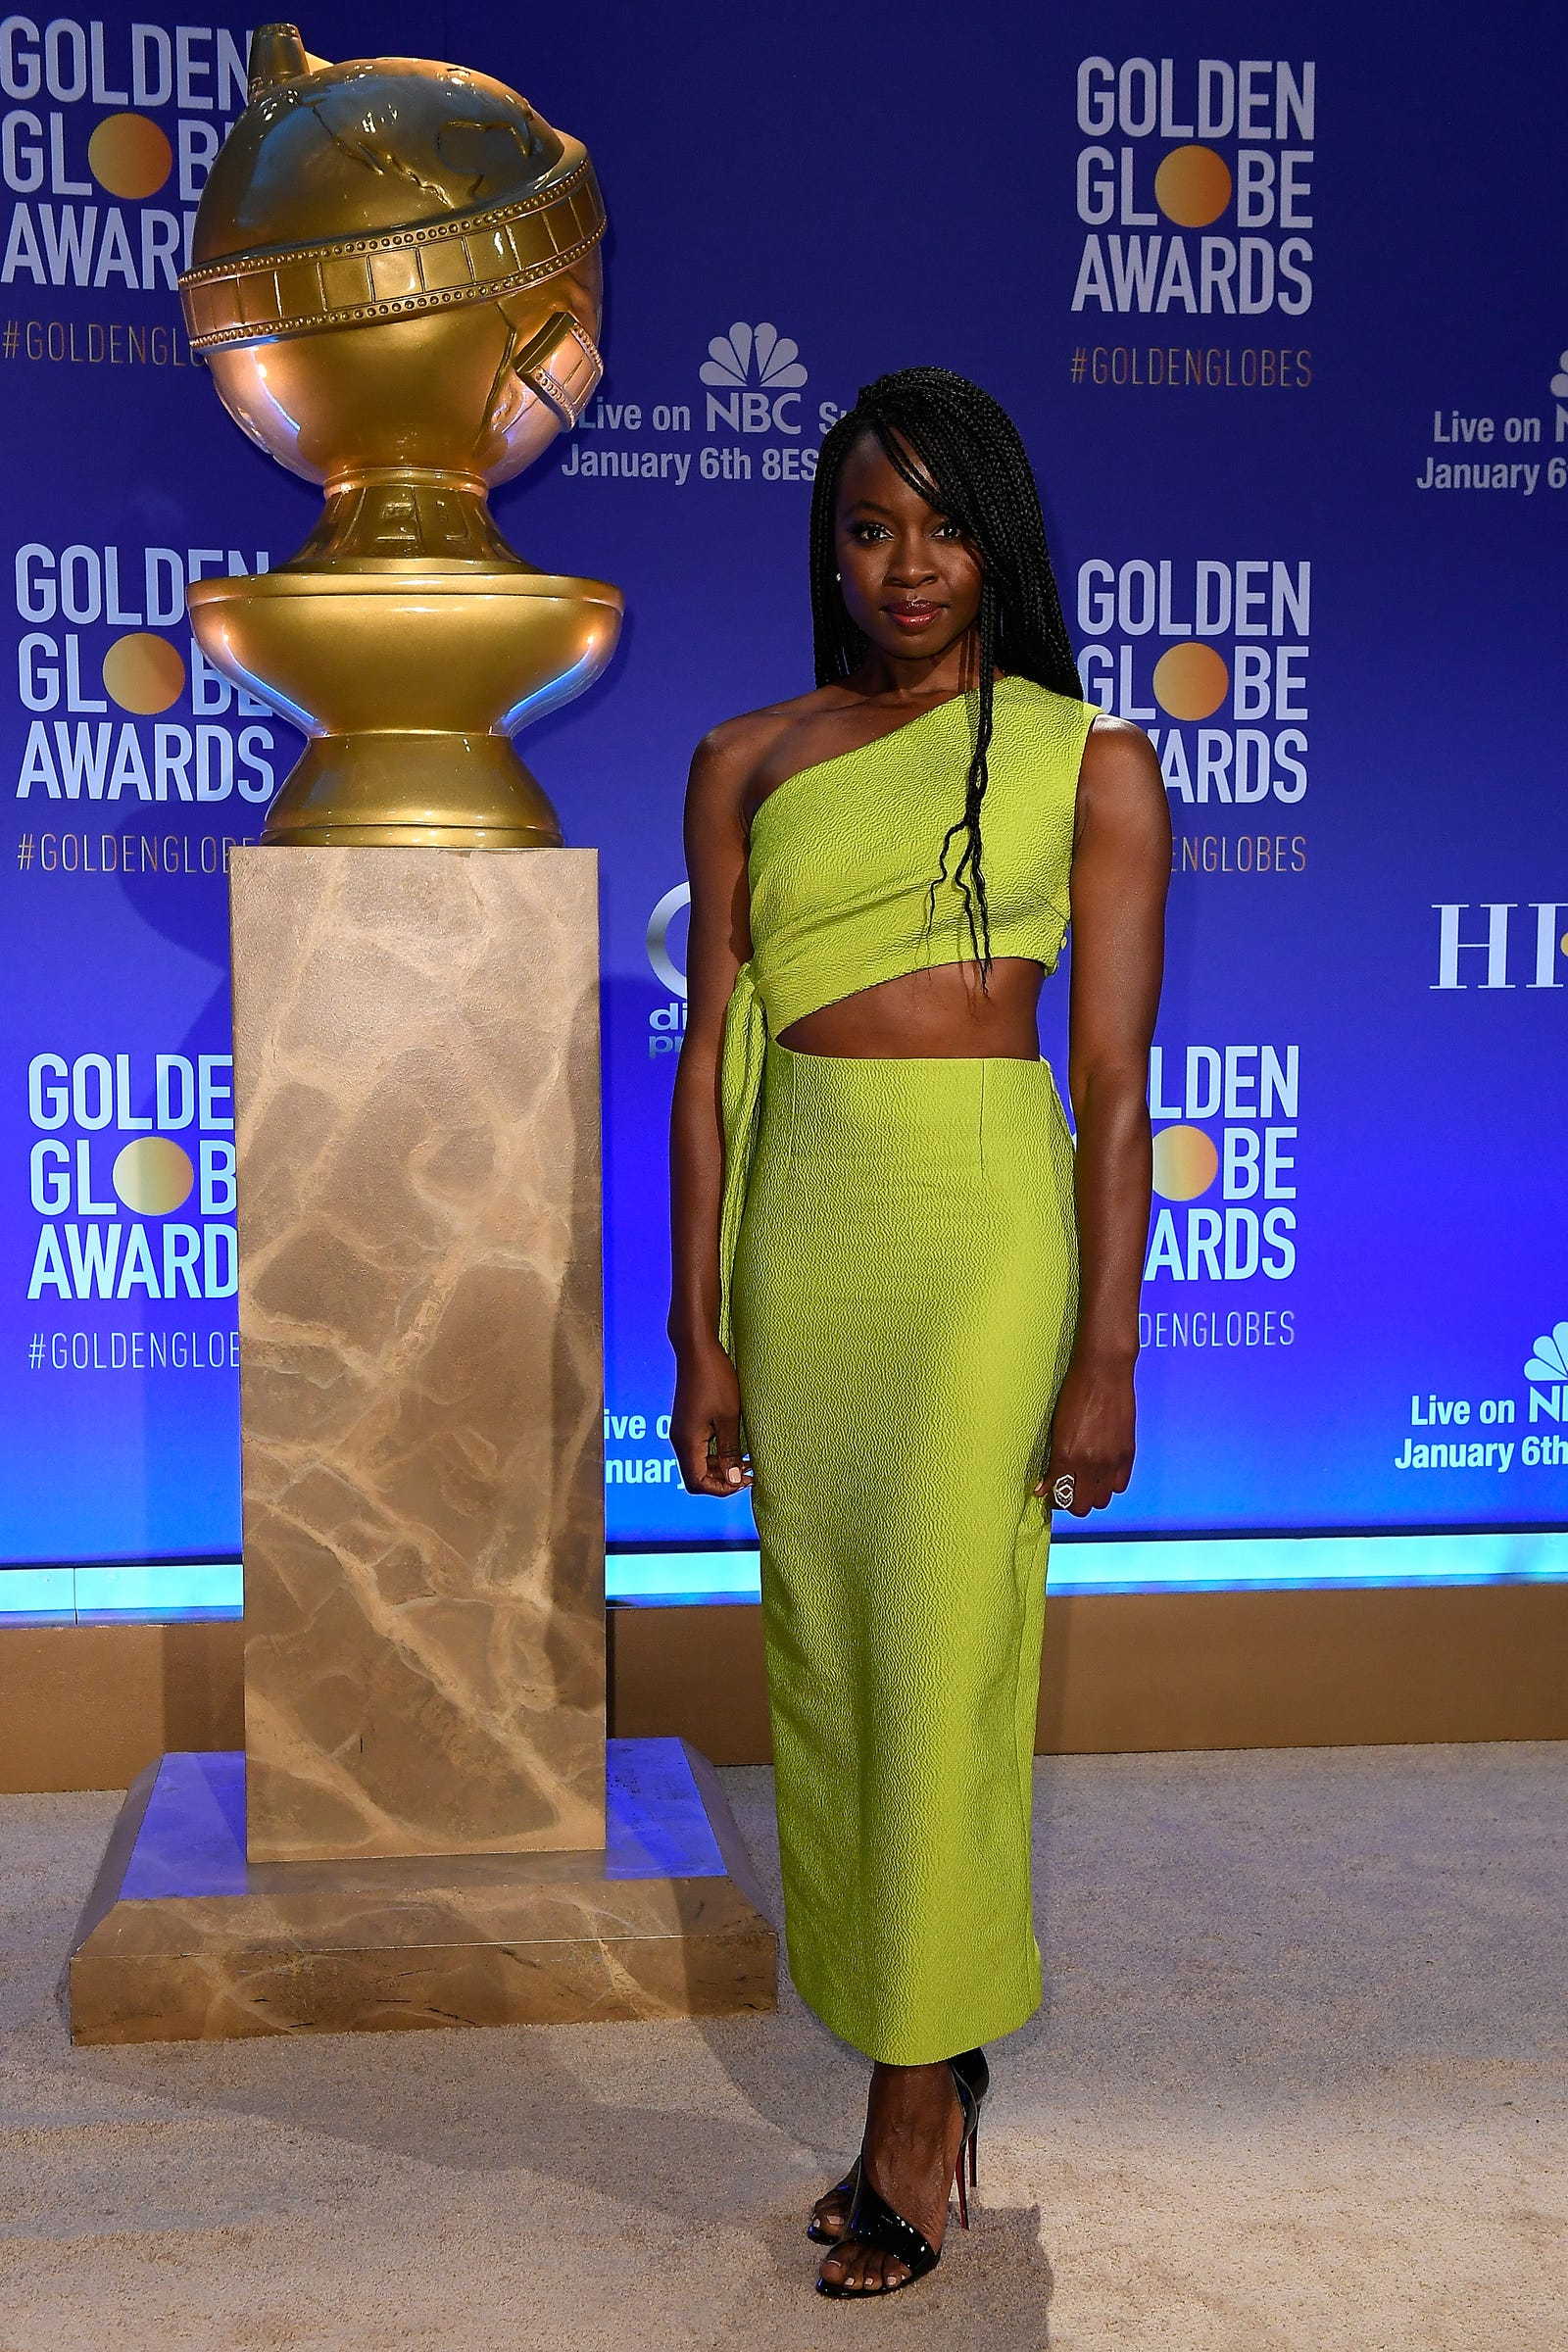 Danai Gurira attends the 76th Annual Golden Globe Nominations Announcement on December 6, 2018 in Beverly Hills, California.